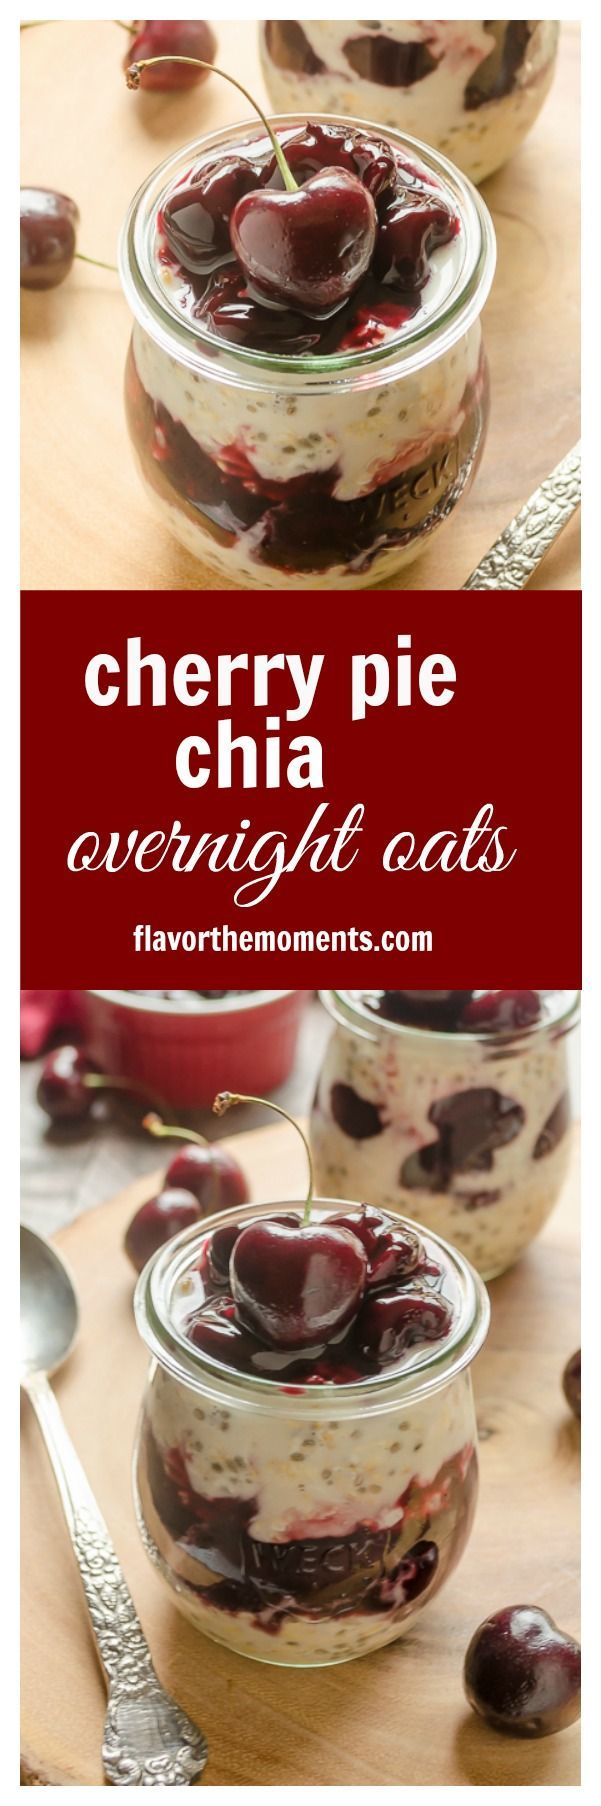 Cherry Pie Chia Overnight Oats are creamy overnight oats with chia seeds and homemade cherry pie filling. These are summer's best overnight oats! @FlavortheMoment